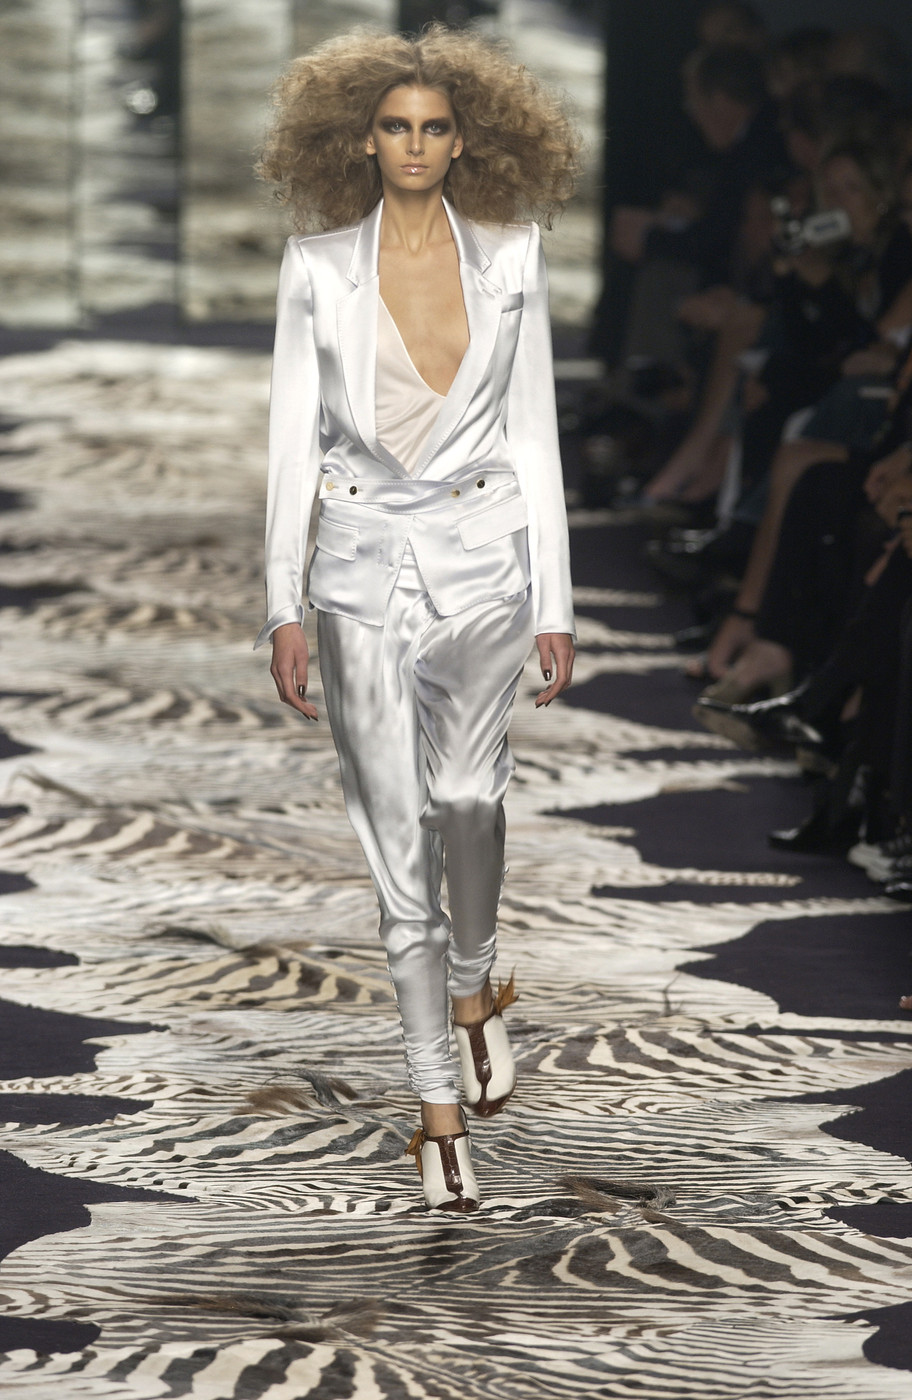 Buy Saint yves laurent spring picture trends